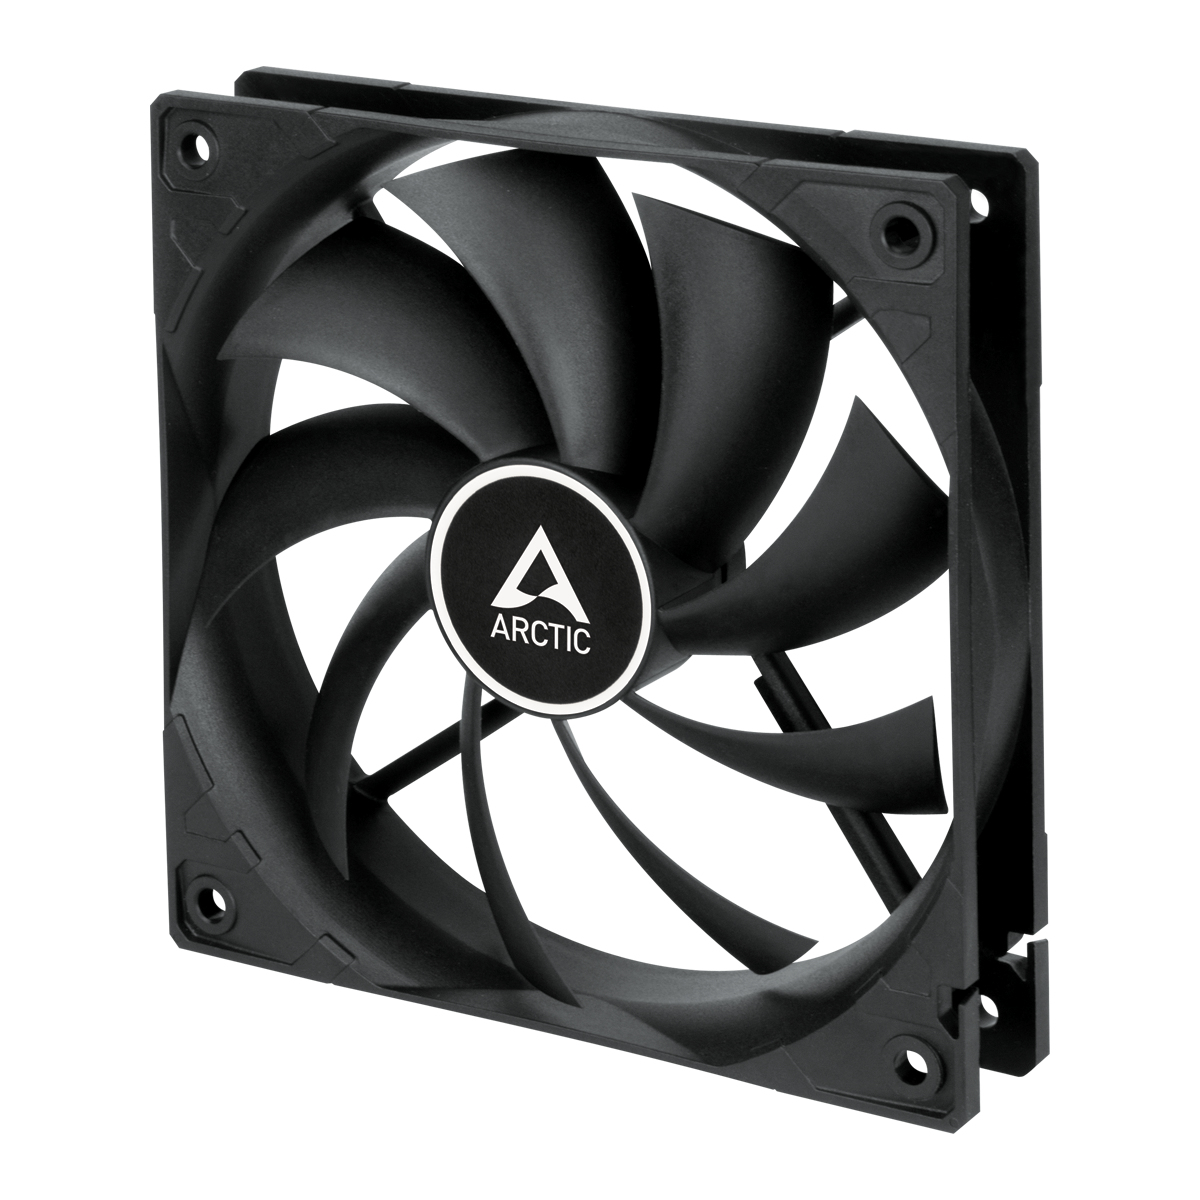 ARCTIC F12 PWM - 120 mm PWM Case Fan Computer case Cooler 12 cm Black 1 pc(s)